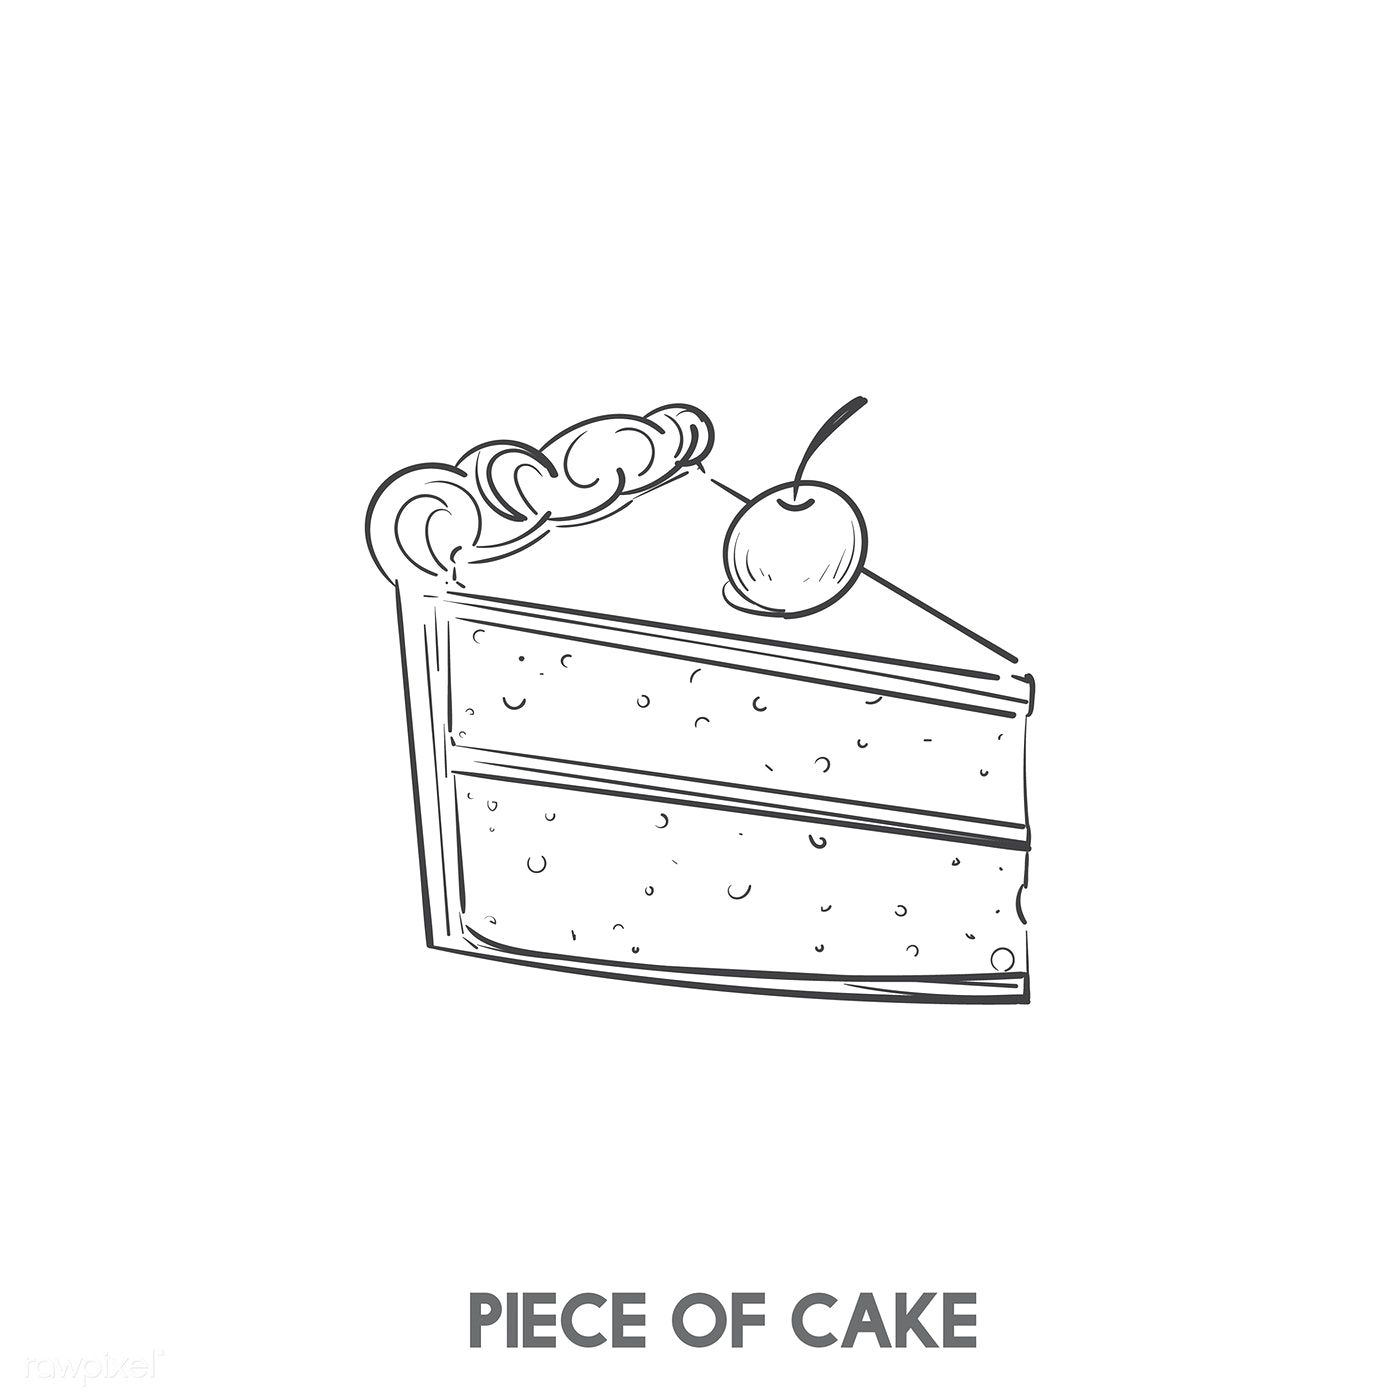 11 baking cake Illustration